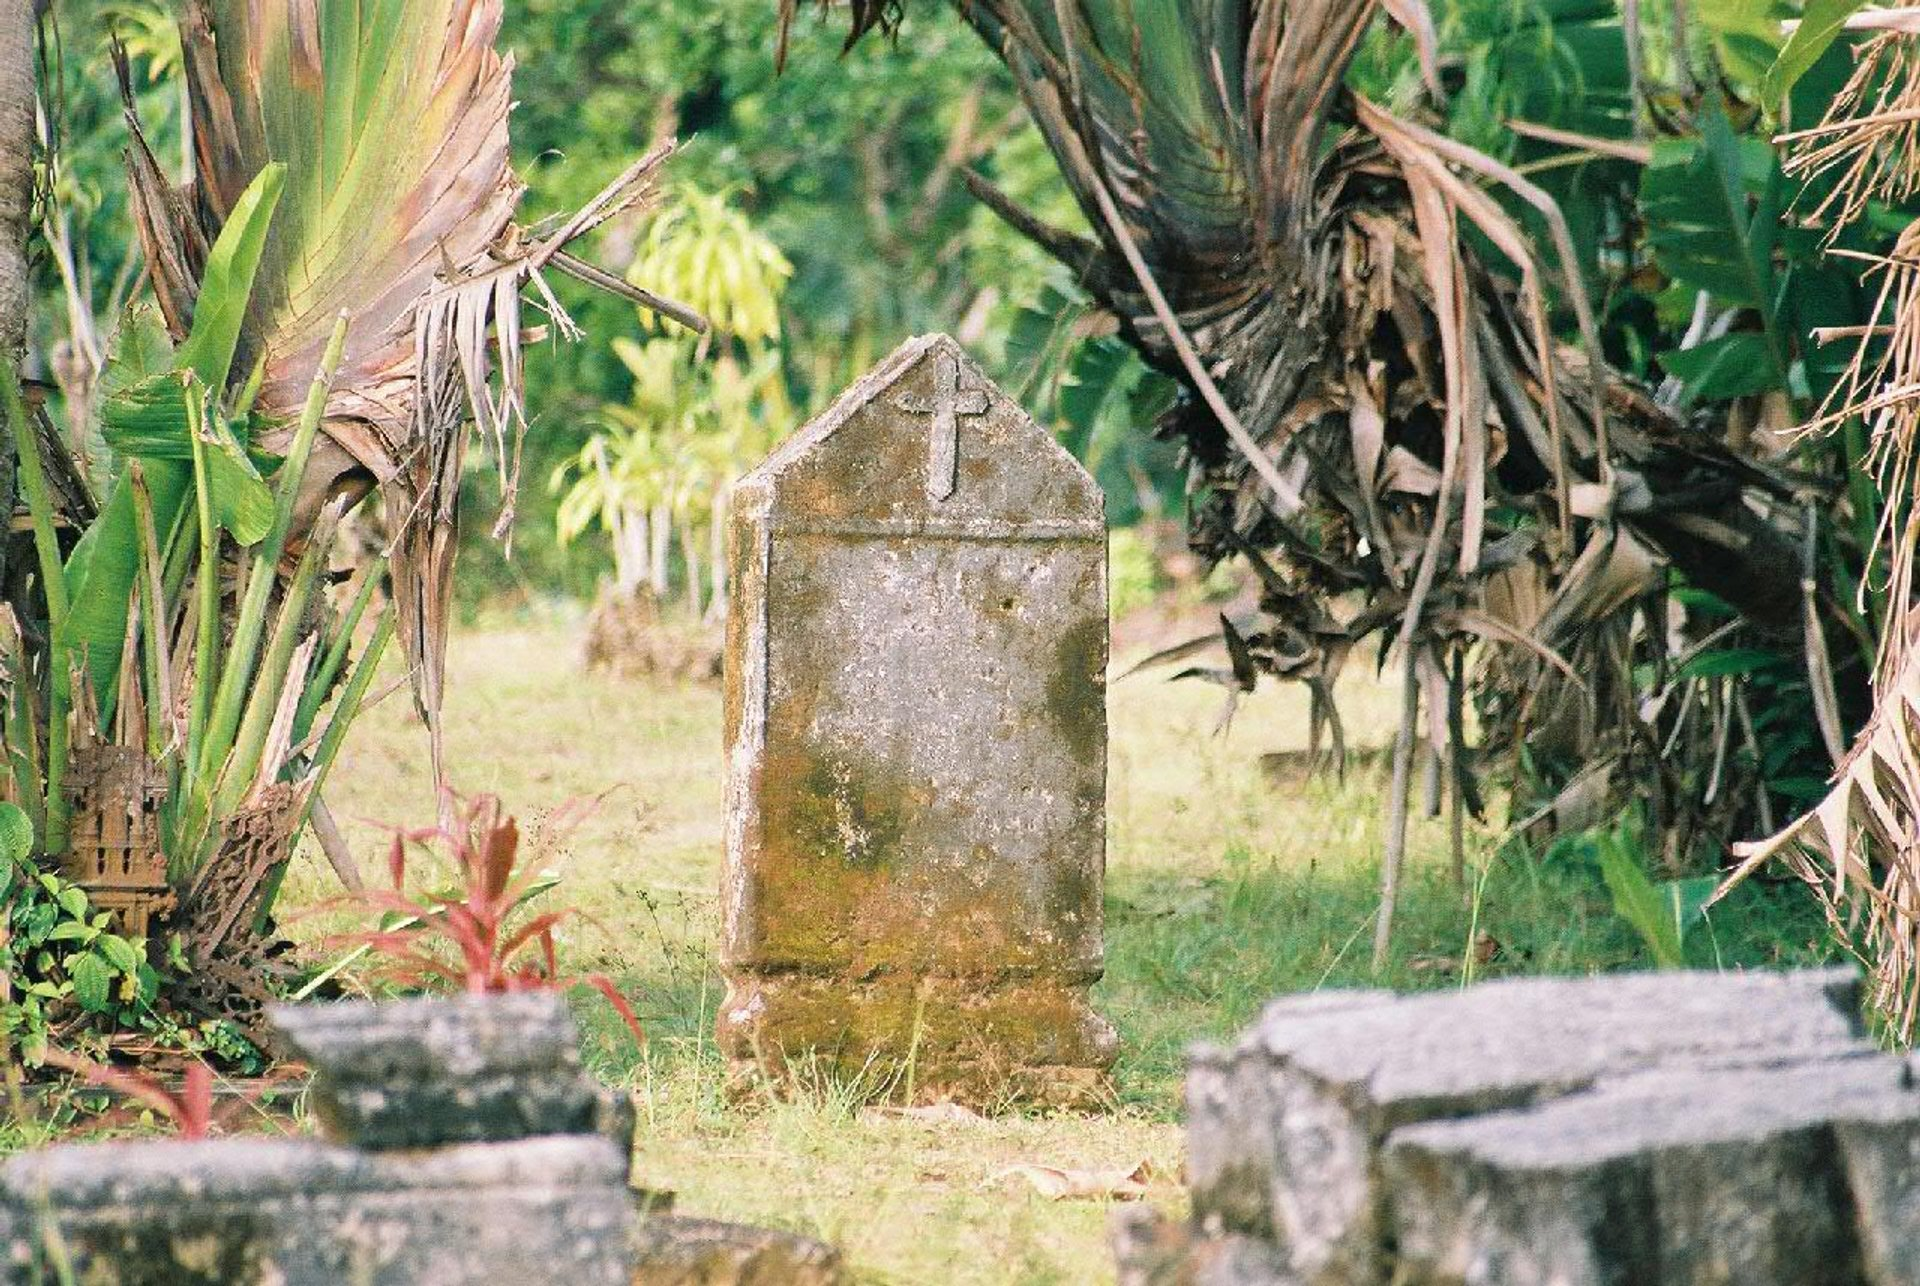 Pirates' Cemetery in Madagascar 2020 - Best Time